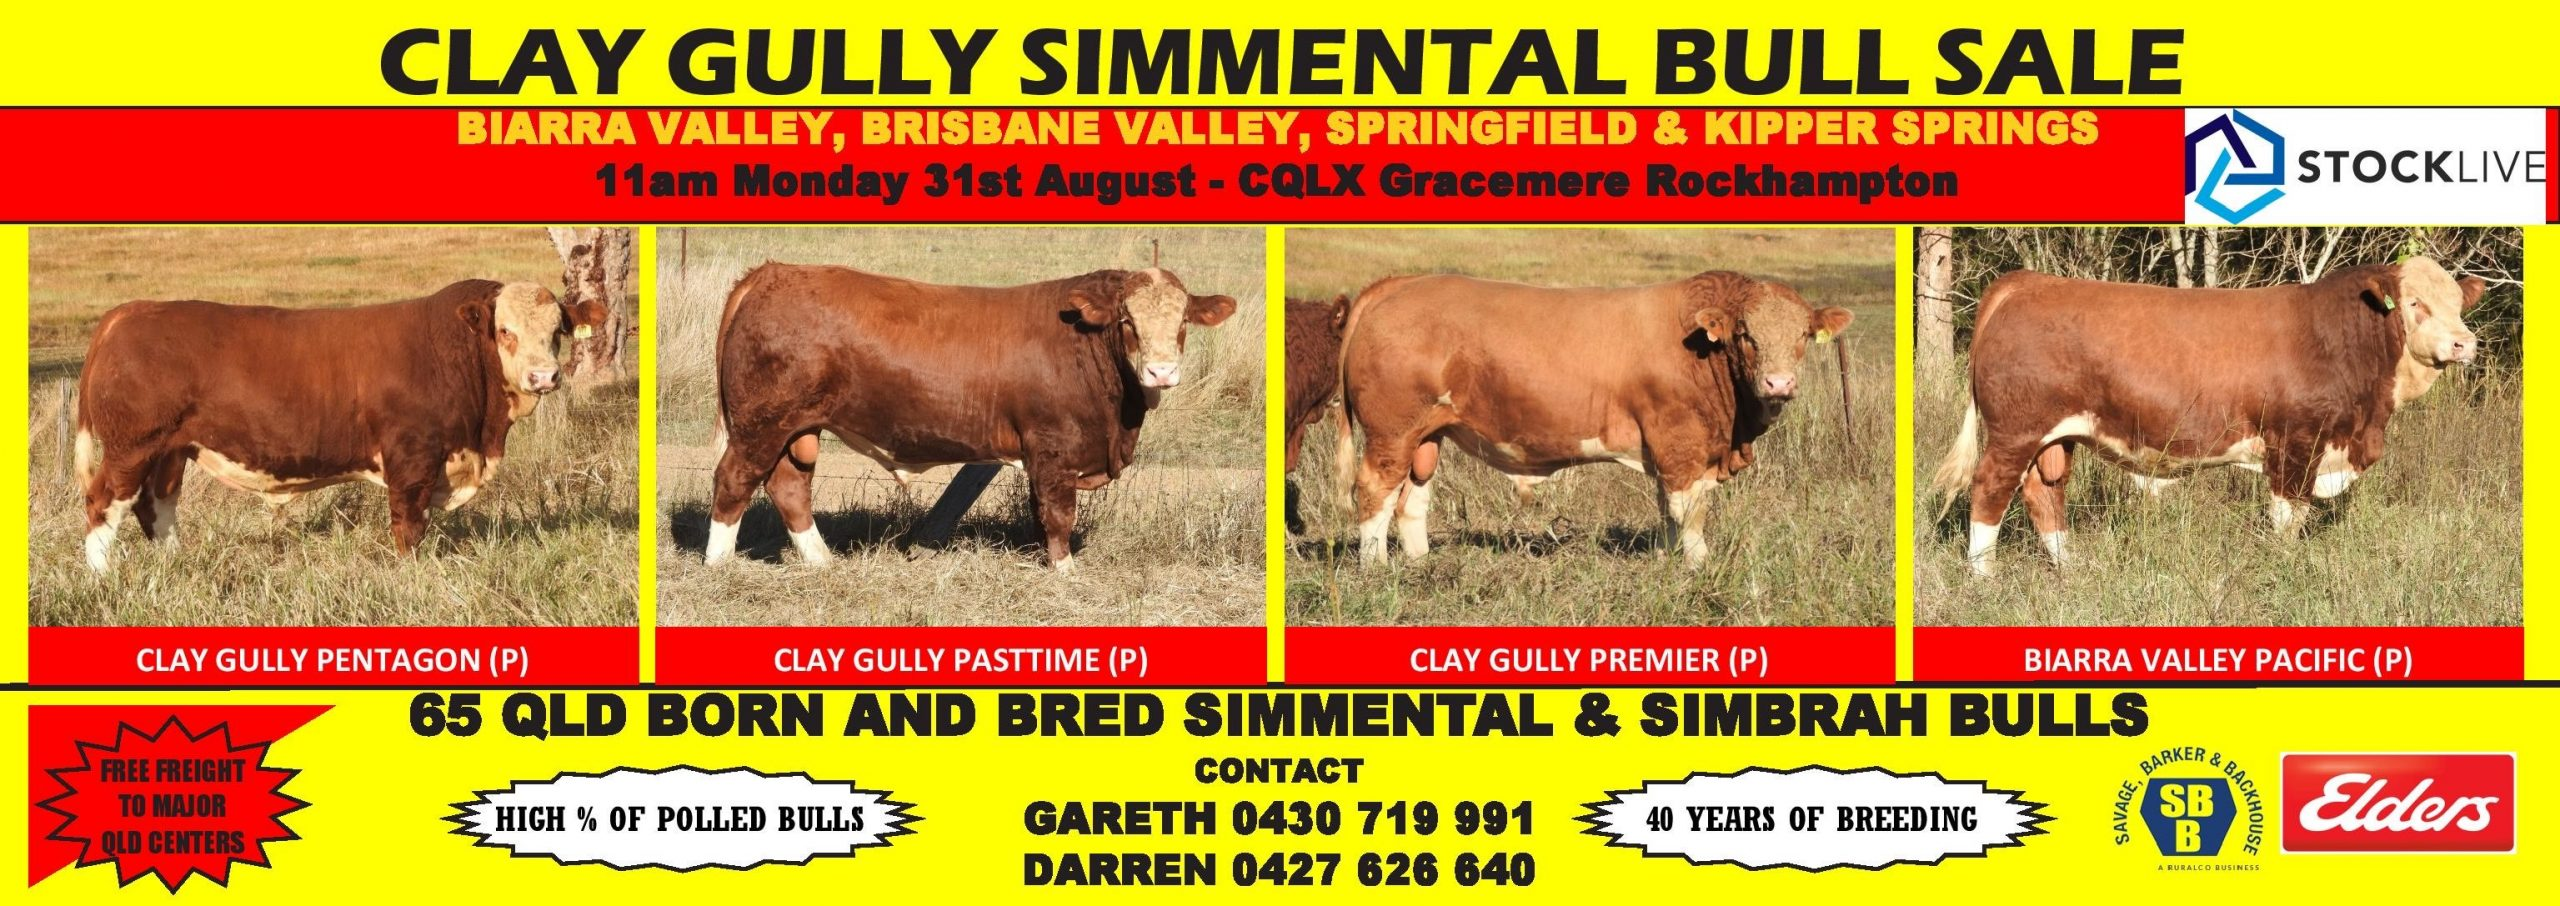 Clay Gully Simmental Bull Sale